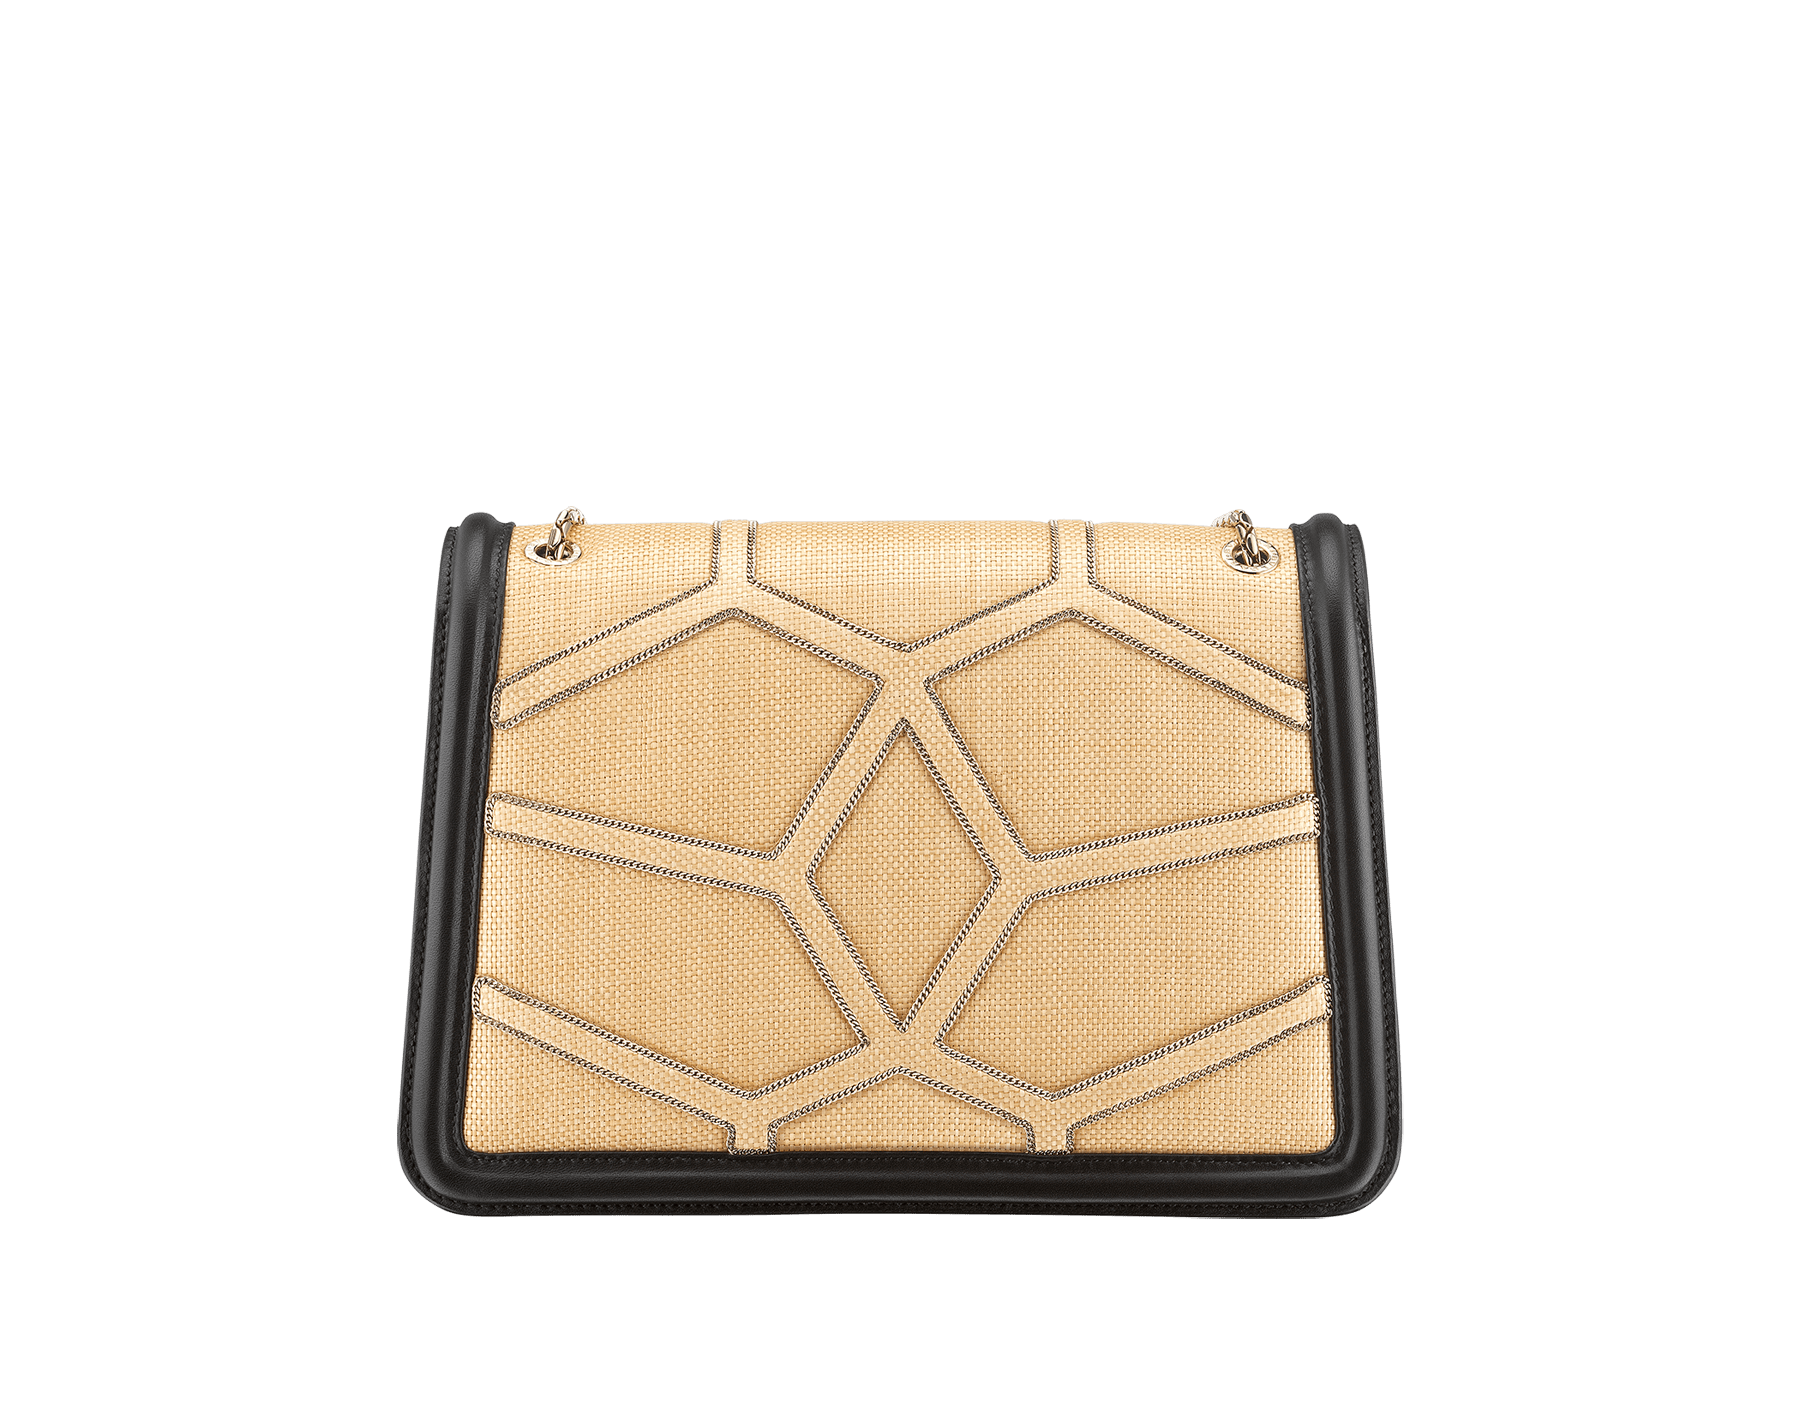 """""""Serpenti Forever """" shoulder bag in beige raffia and black nappa leather internal lining. Alluring light gold-plated brass snakehead closure enhanced with full matte Natural beige enamel and black onyx eyes. 290904 image 3"""